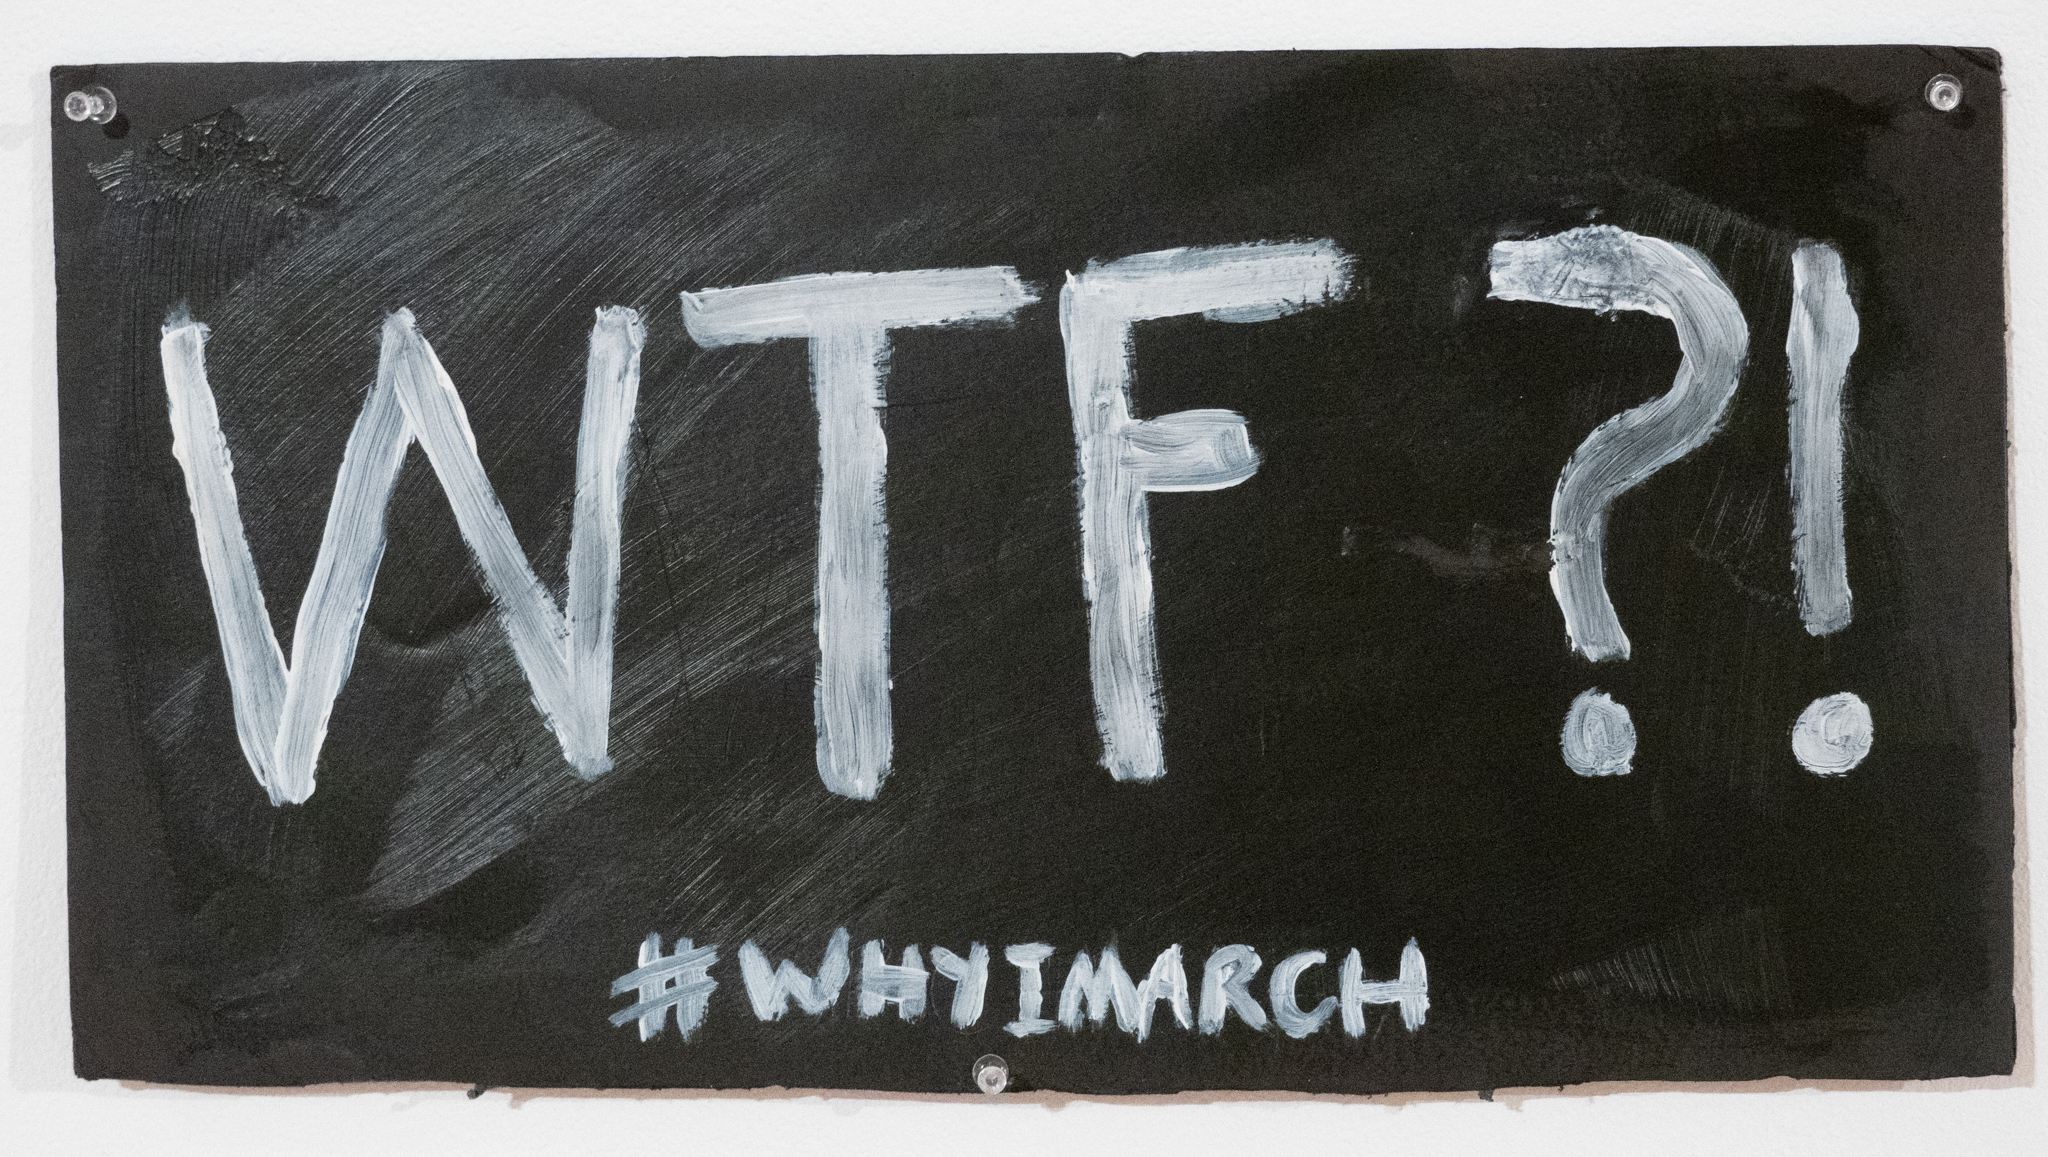 WTF #whyImarch